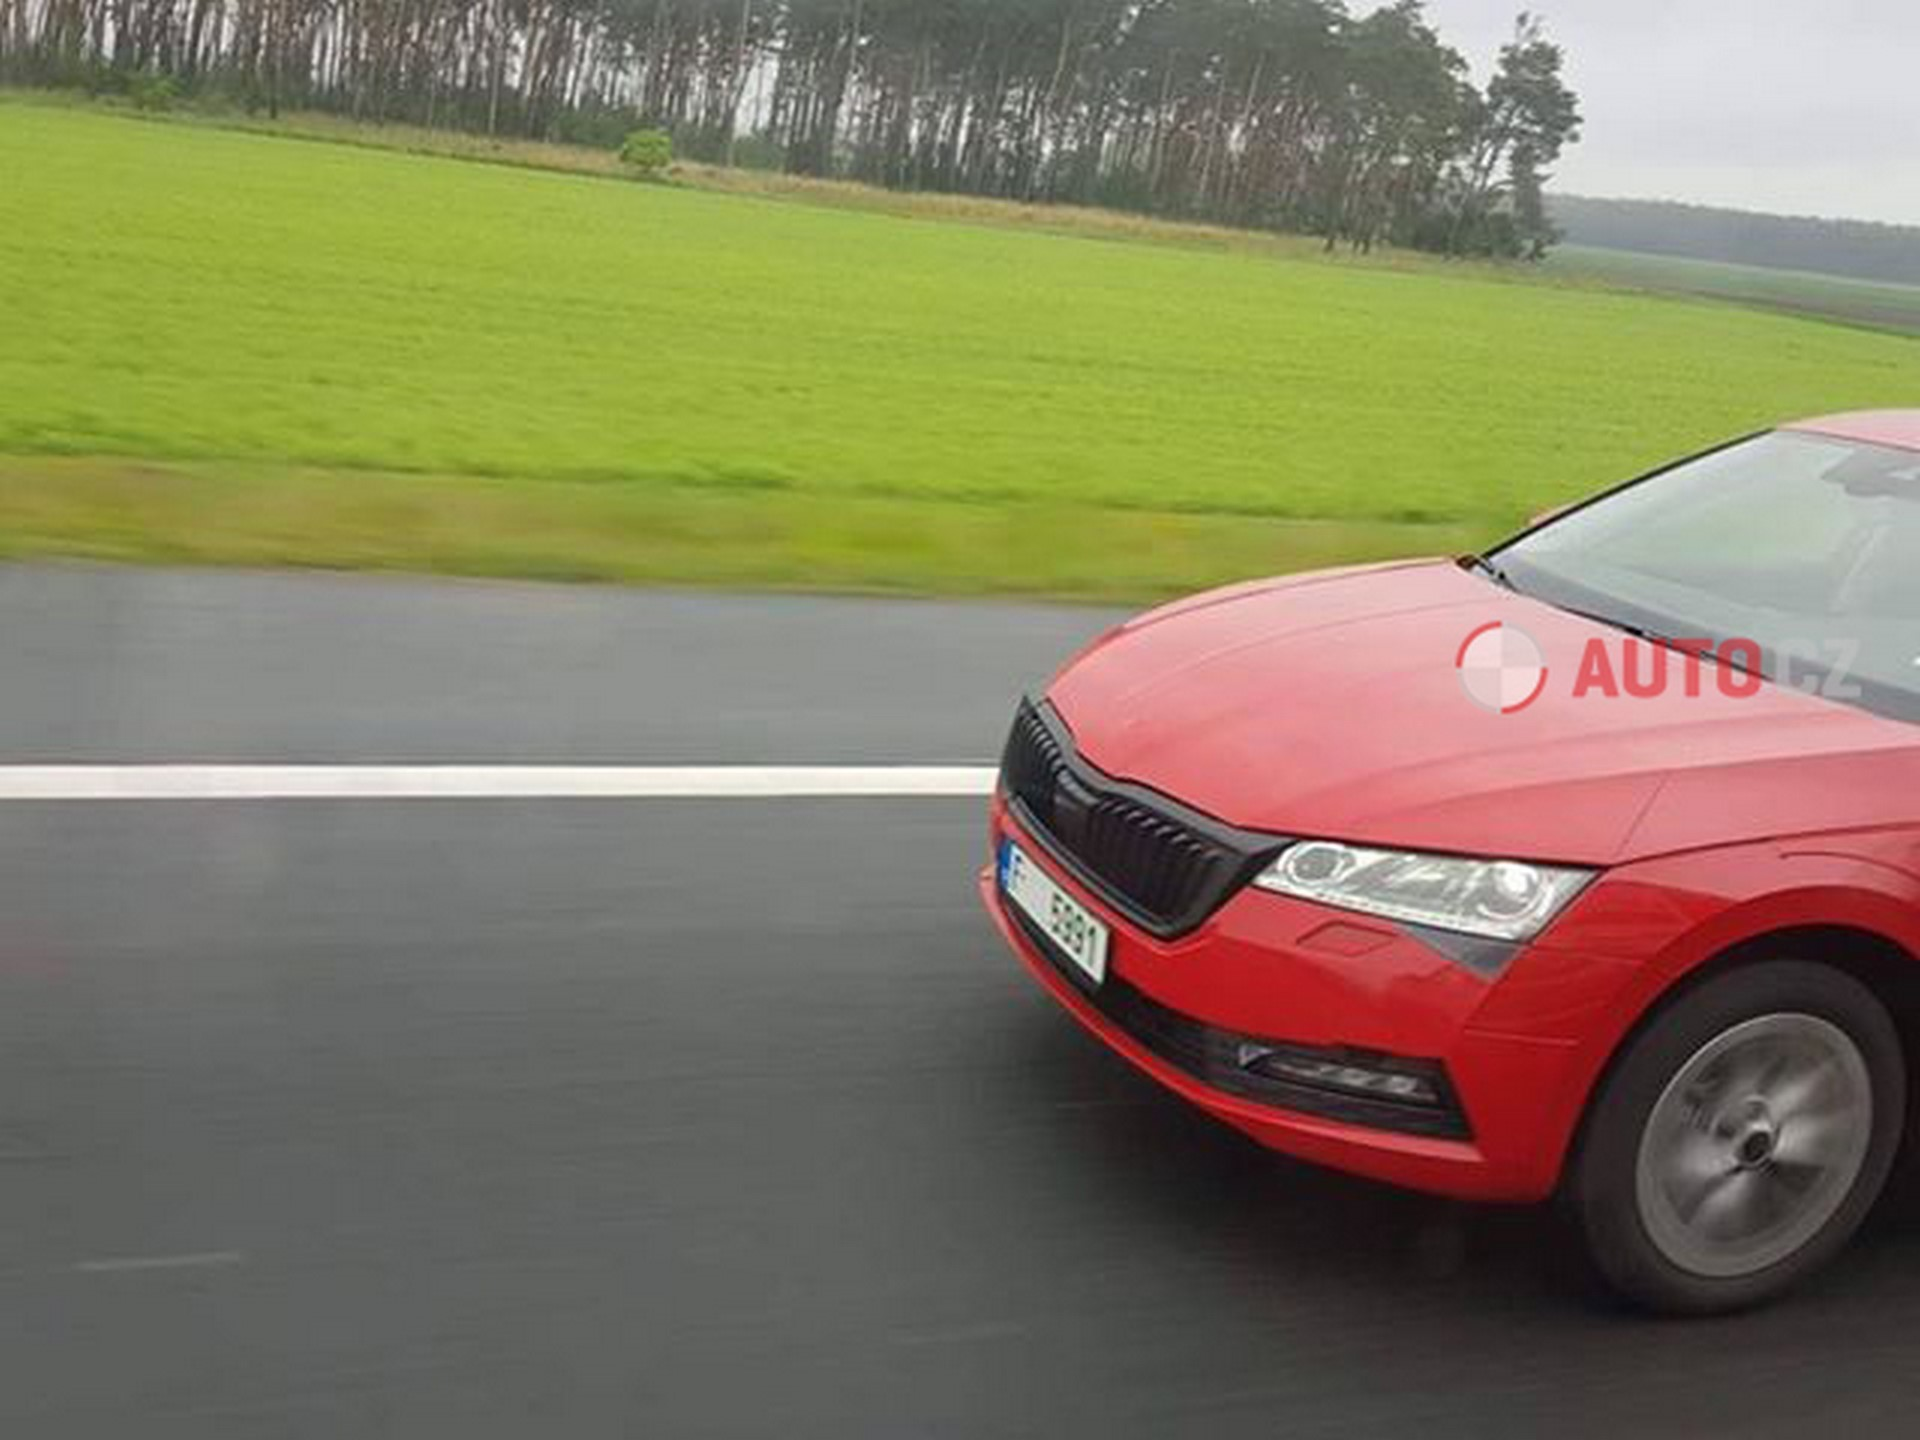 Skoda-Octavia-spy-photos-5